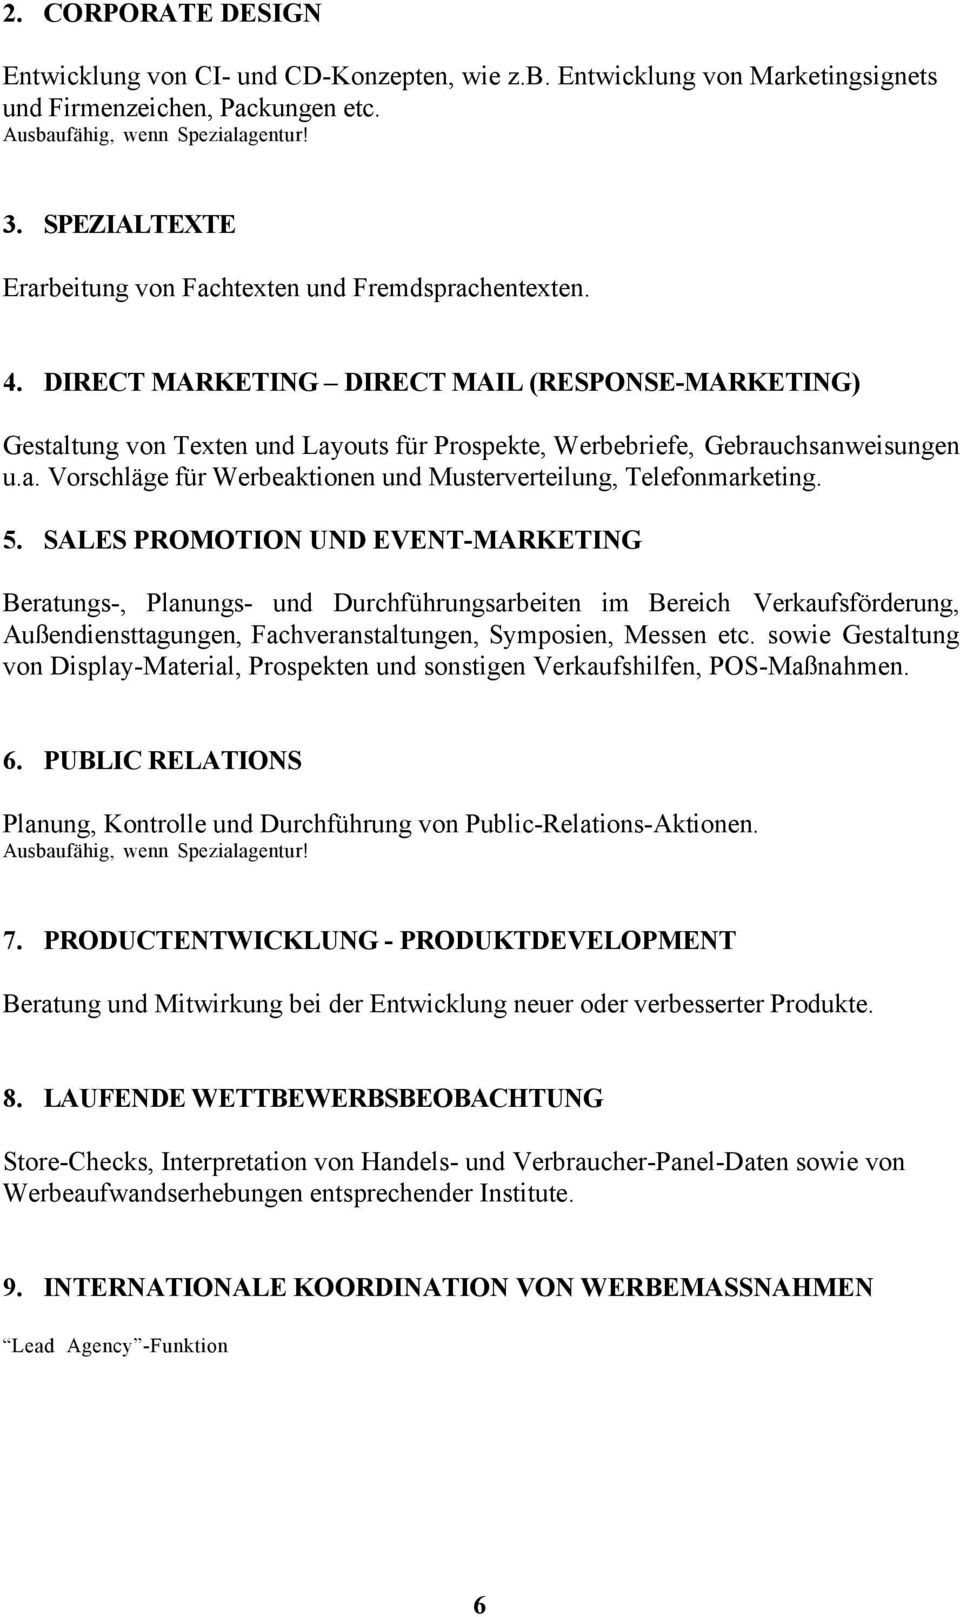 direct marketing direct mail response marketing gestaltung von texten und layouts fr prospekte - Verschwiegenheitserklrung Muster